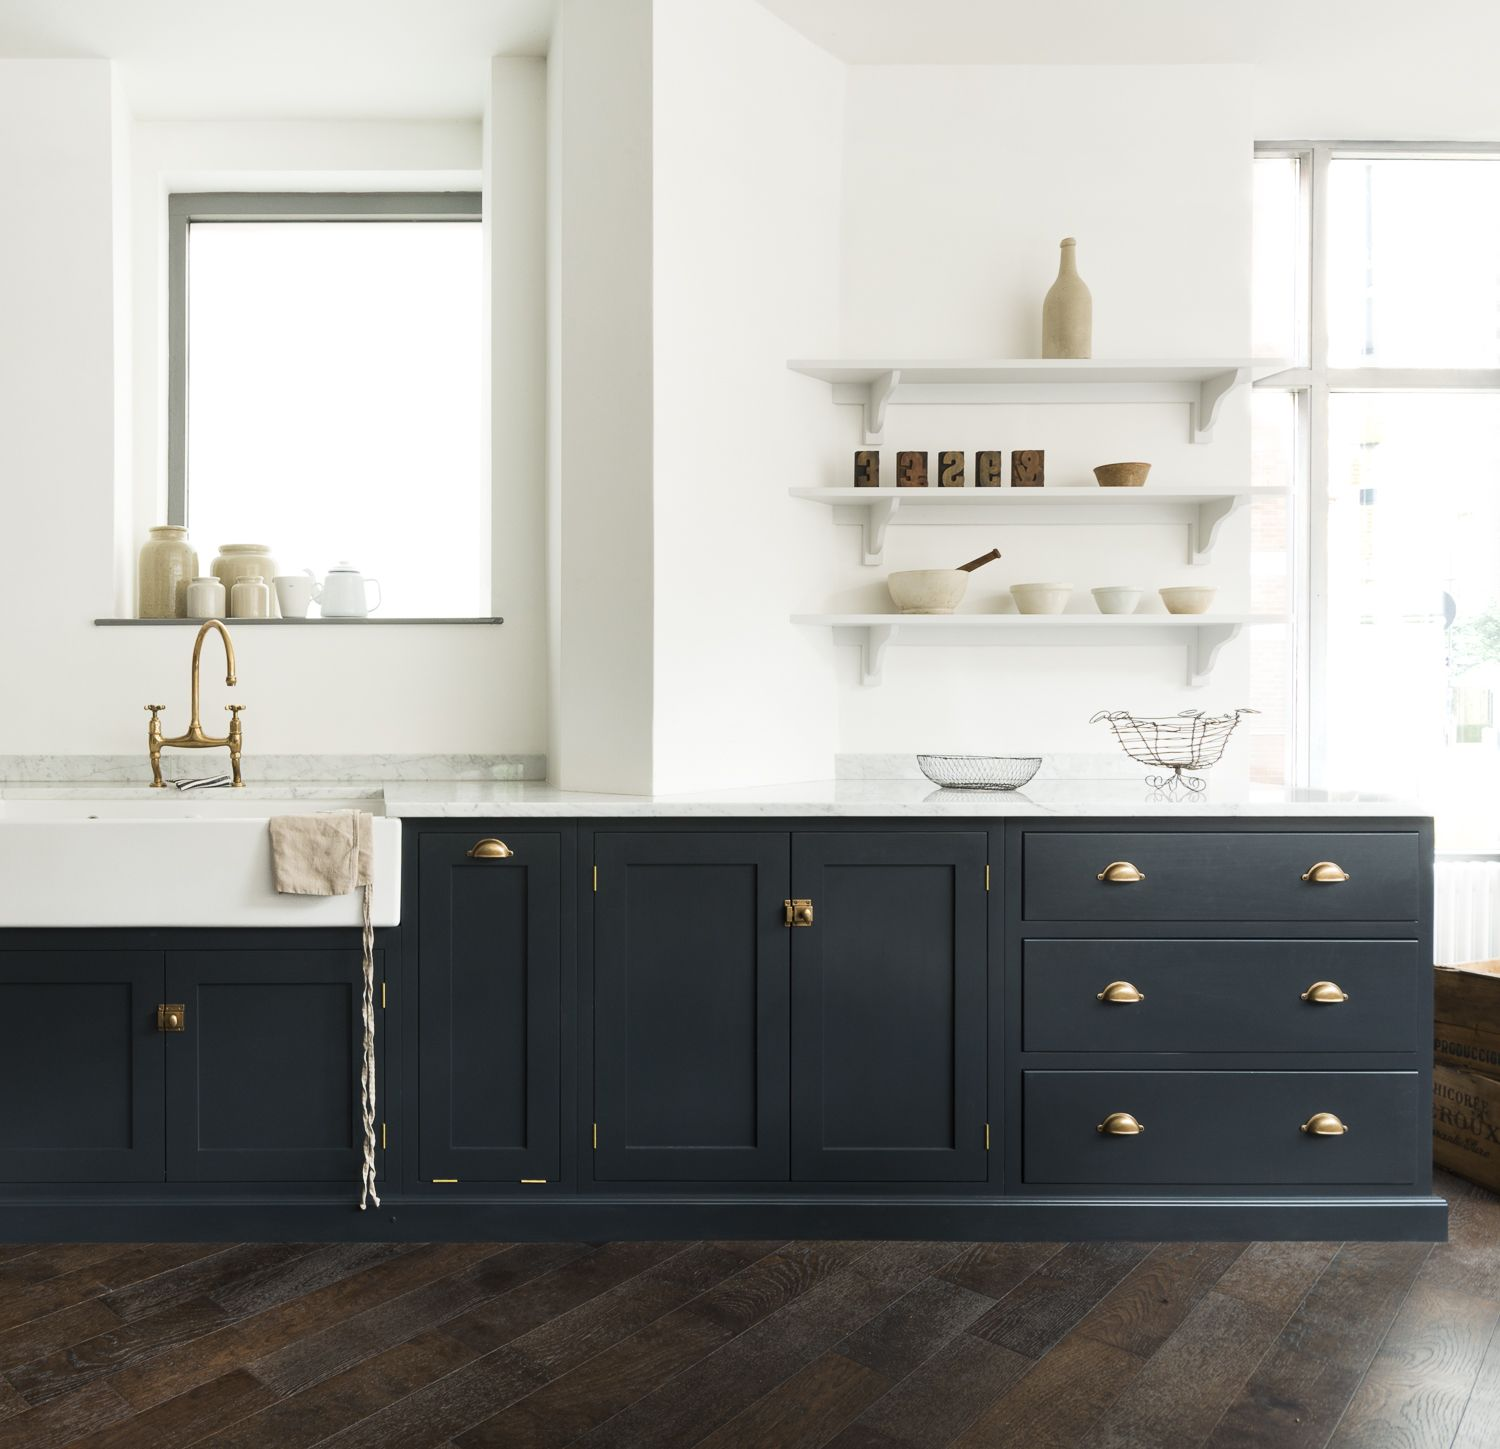 bella brass hardware and pantry blue paint are the perfect